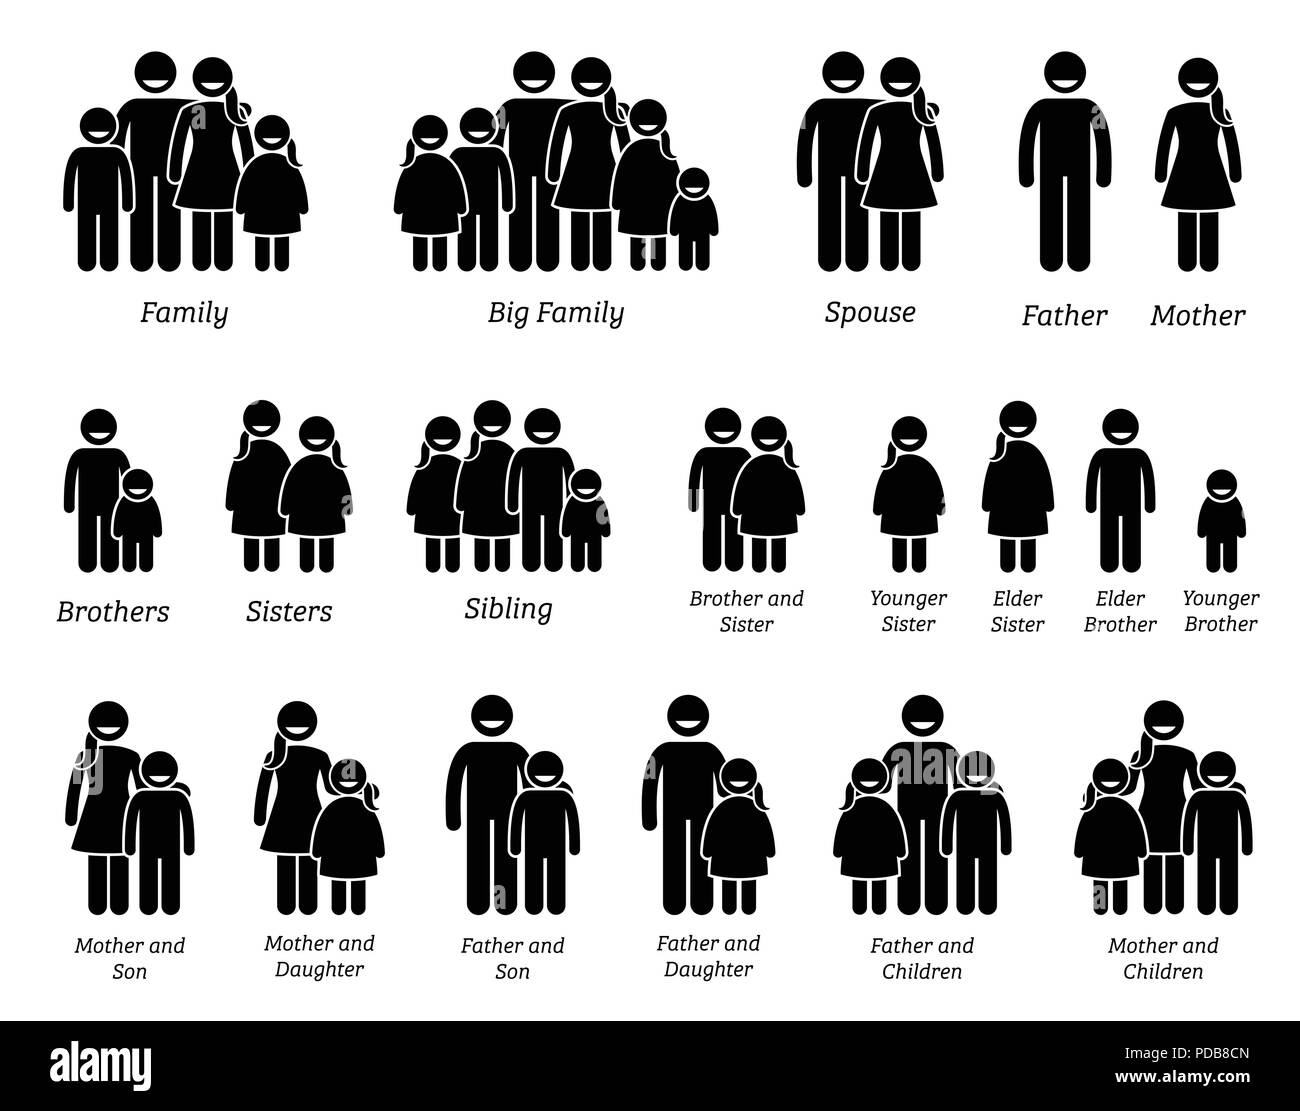 Family and People Icons. Stick figure pictograms depict a family with father, mother, children, brother, and sister standing together side by side. - Stock Vector